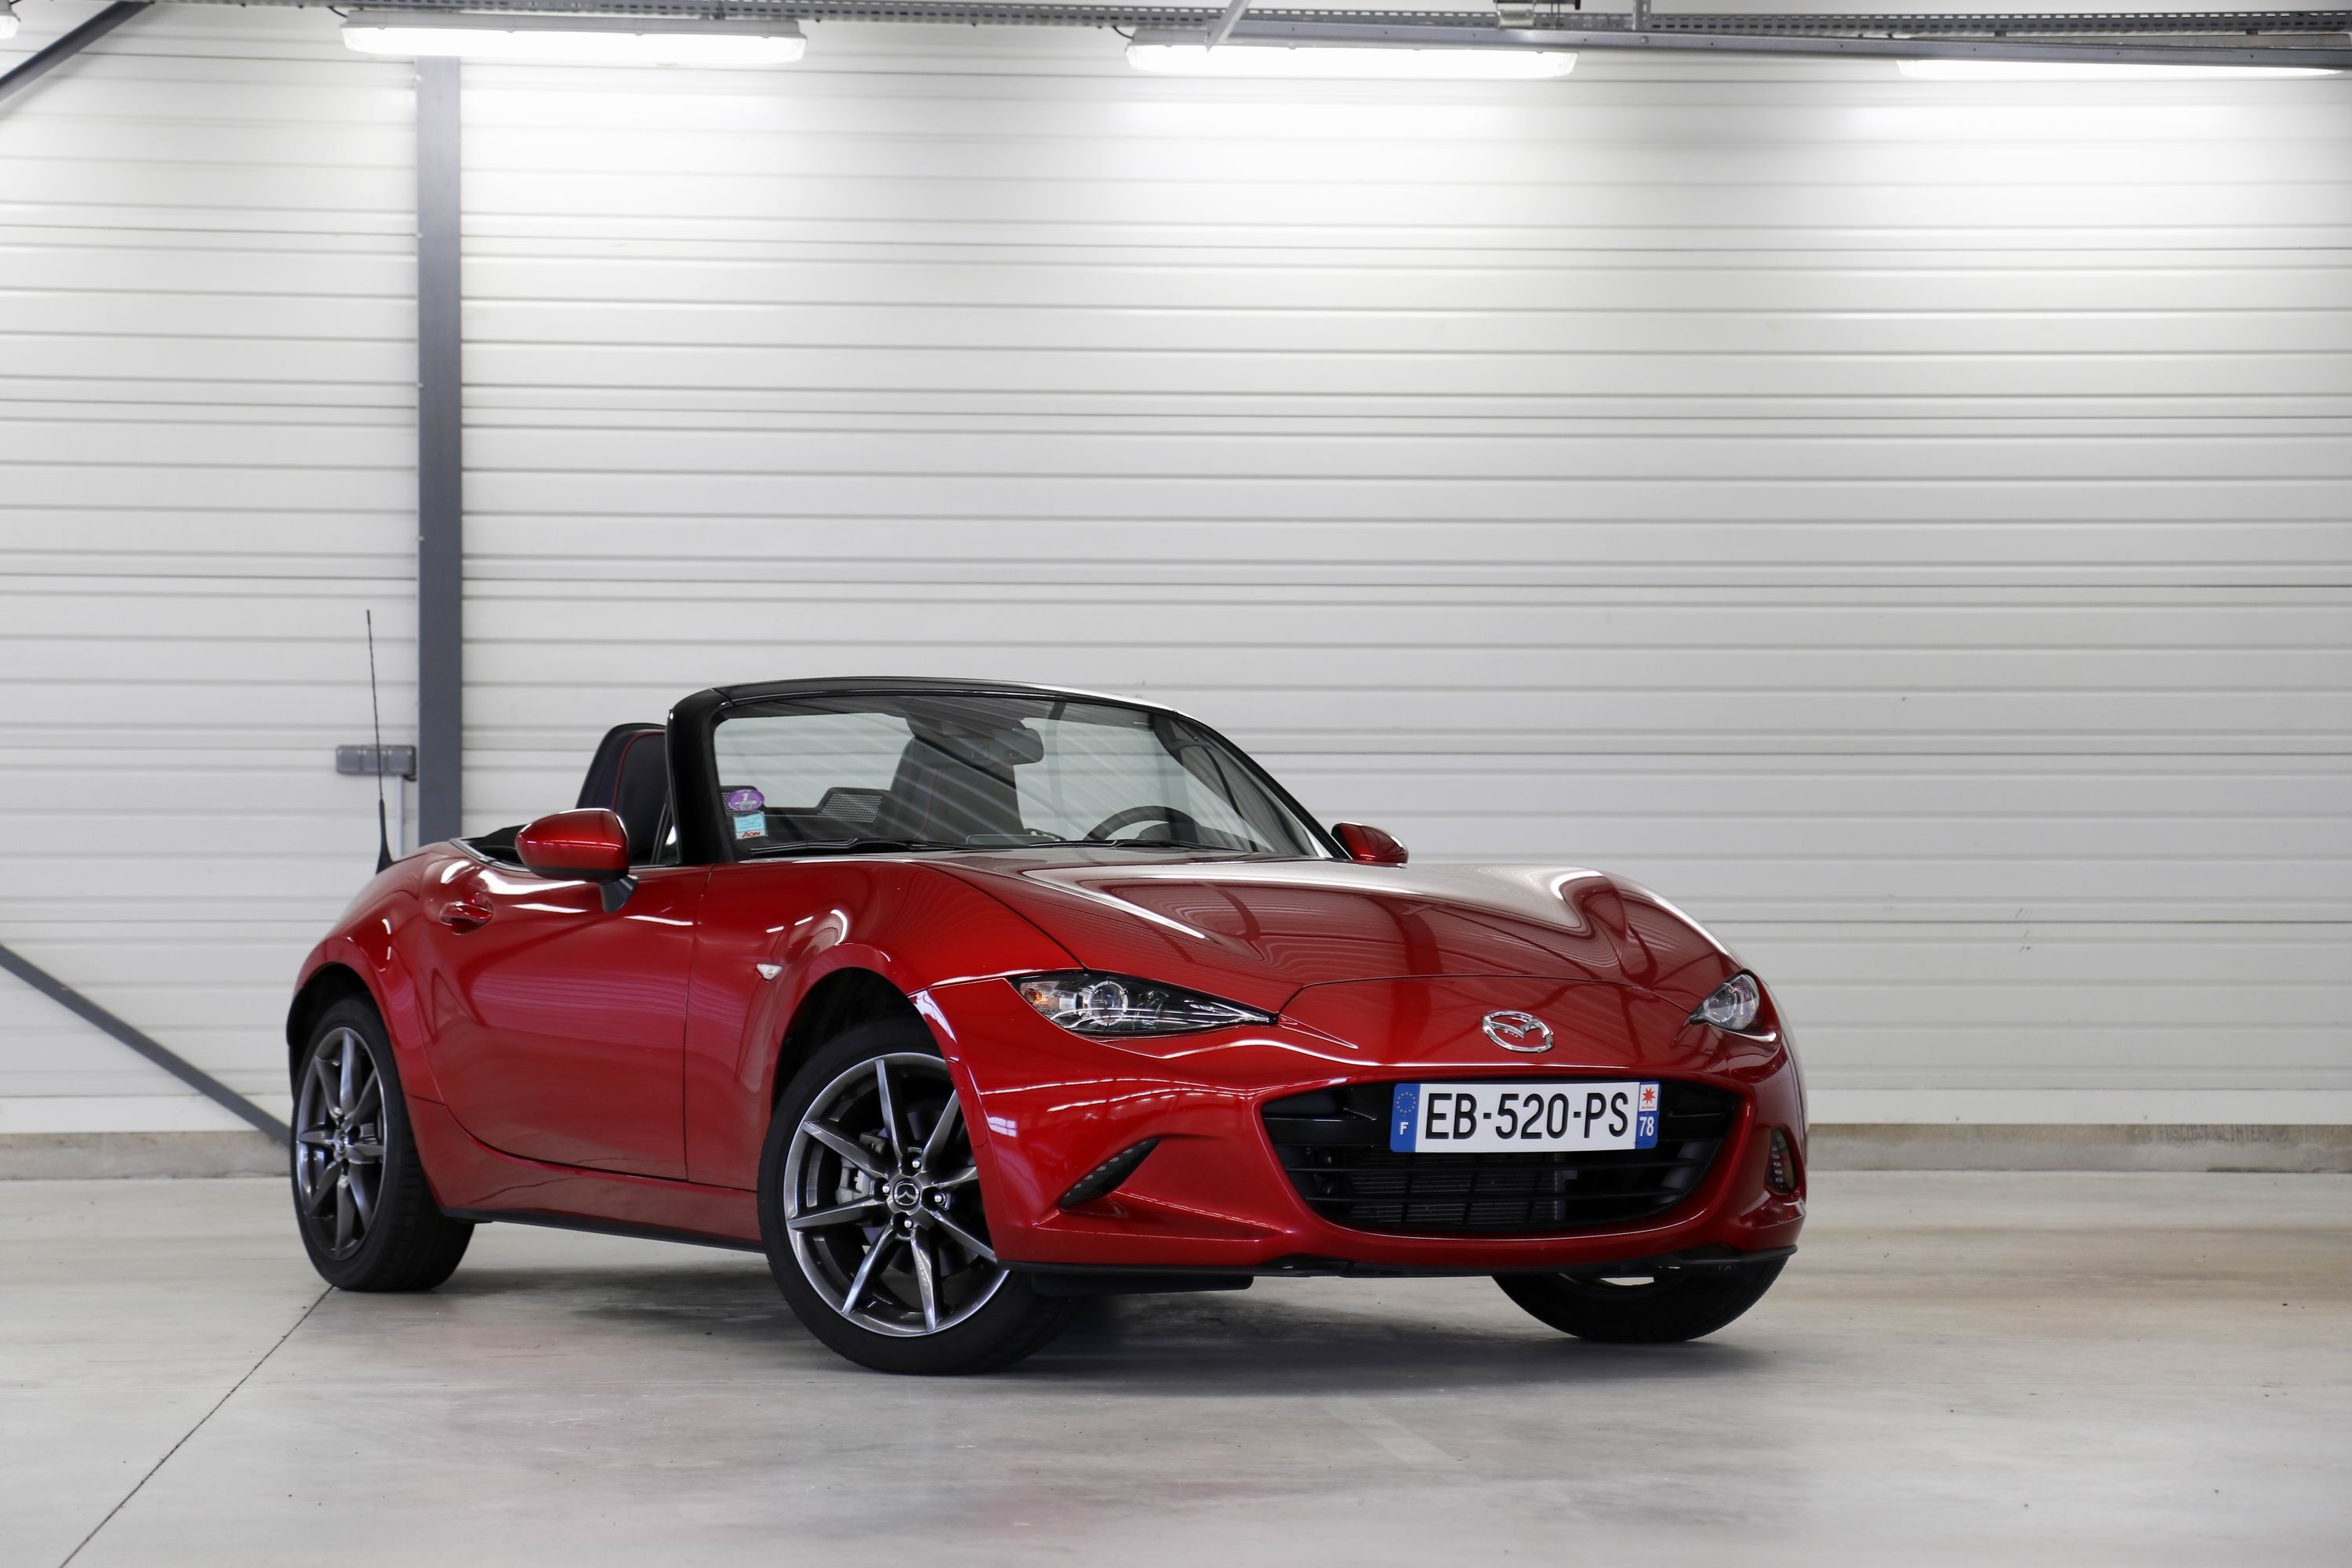 comparatif les essais de soheil ayari abarth 124 spider vs mazda mx 5 le choc des l gendes. Black Bedroom Furniture Sets. Home Design Ideas